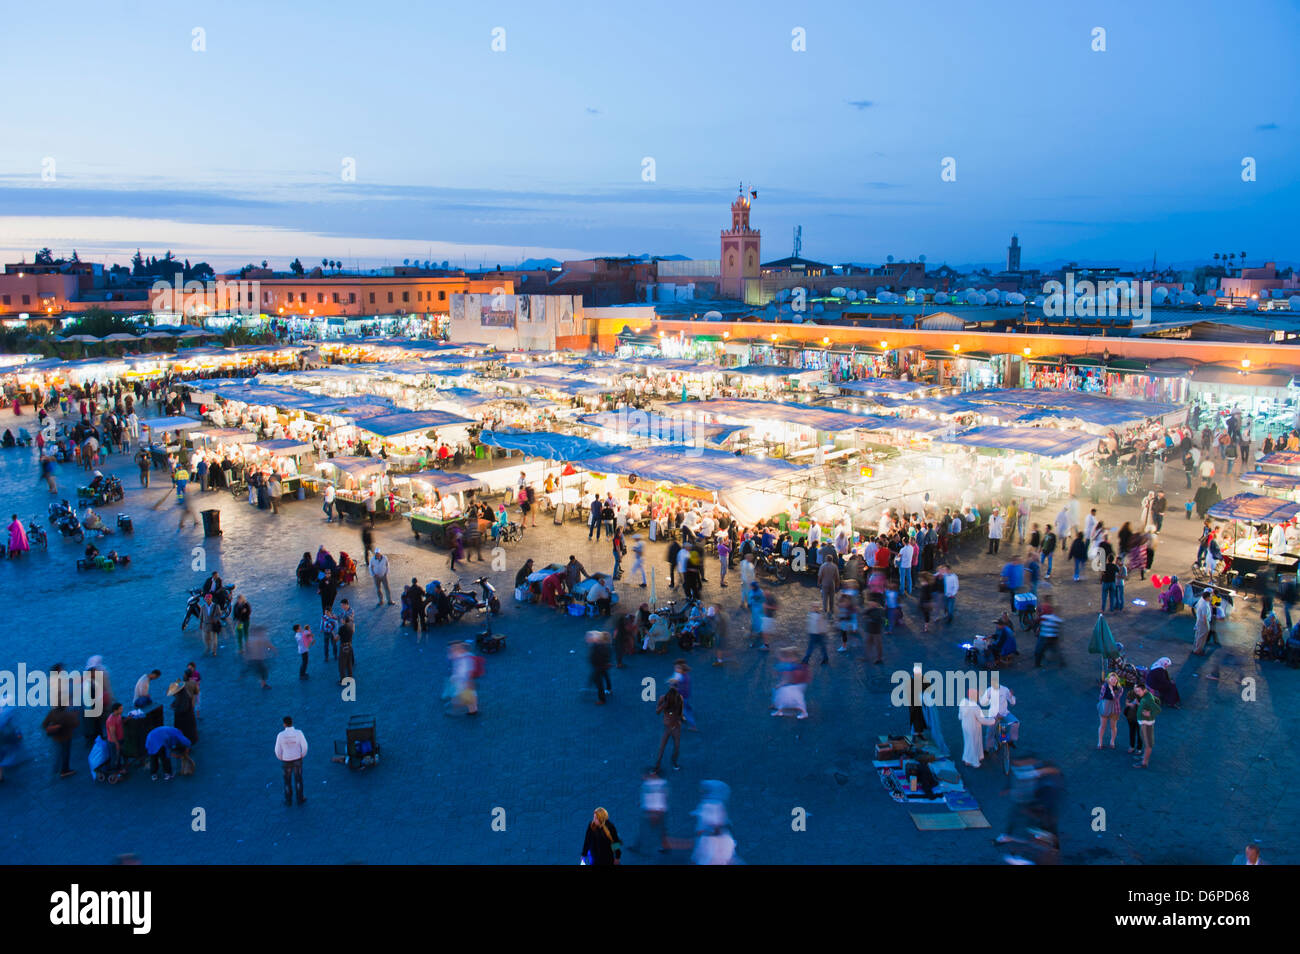 Food stalls in Place Djemaa El Fna at night, Marrakech, Morocco, North Africa, Africa - Stock Image